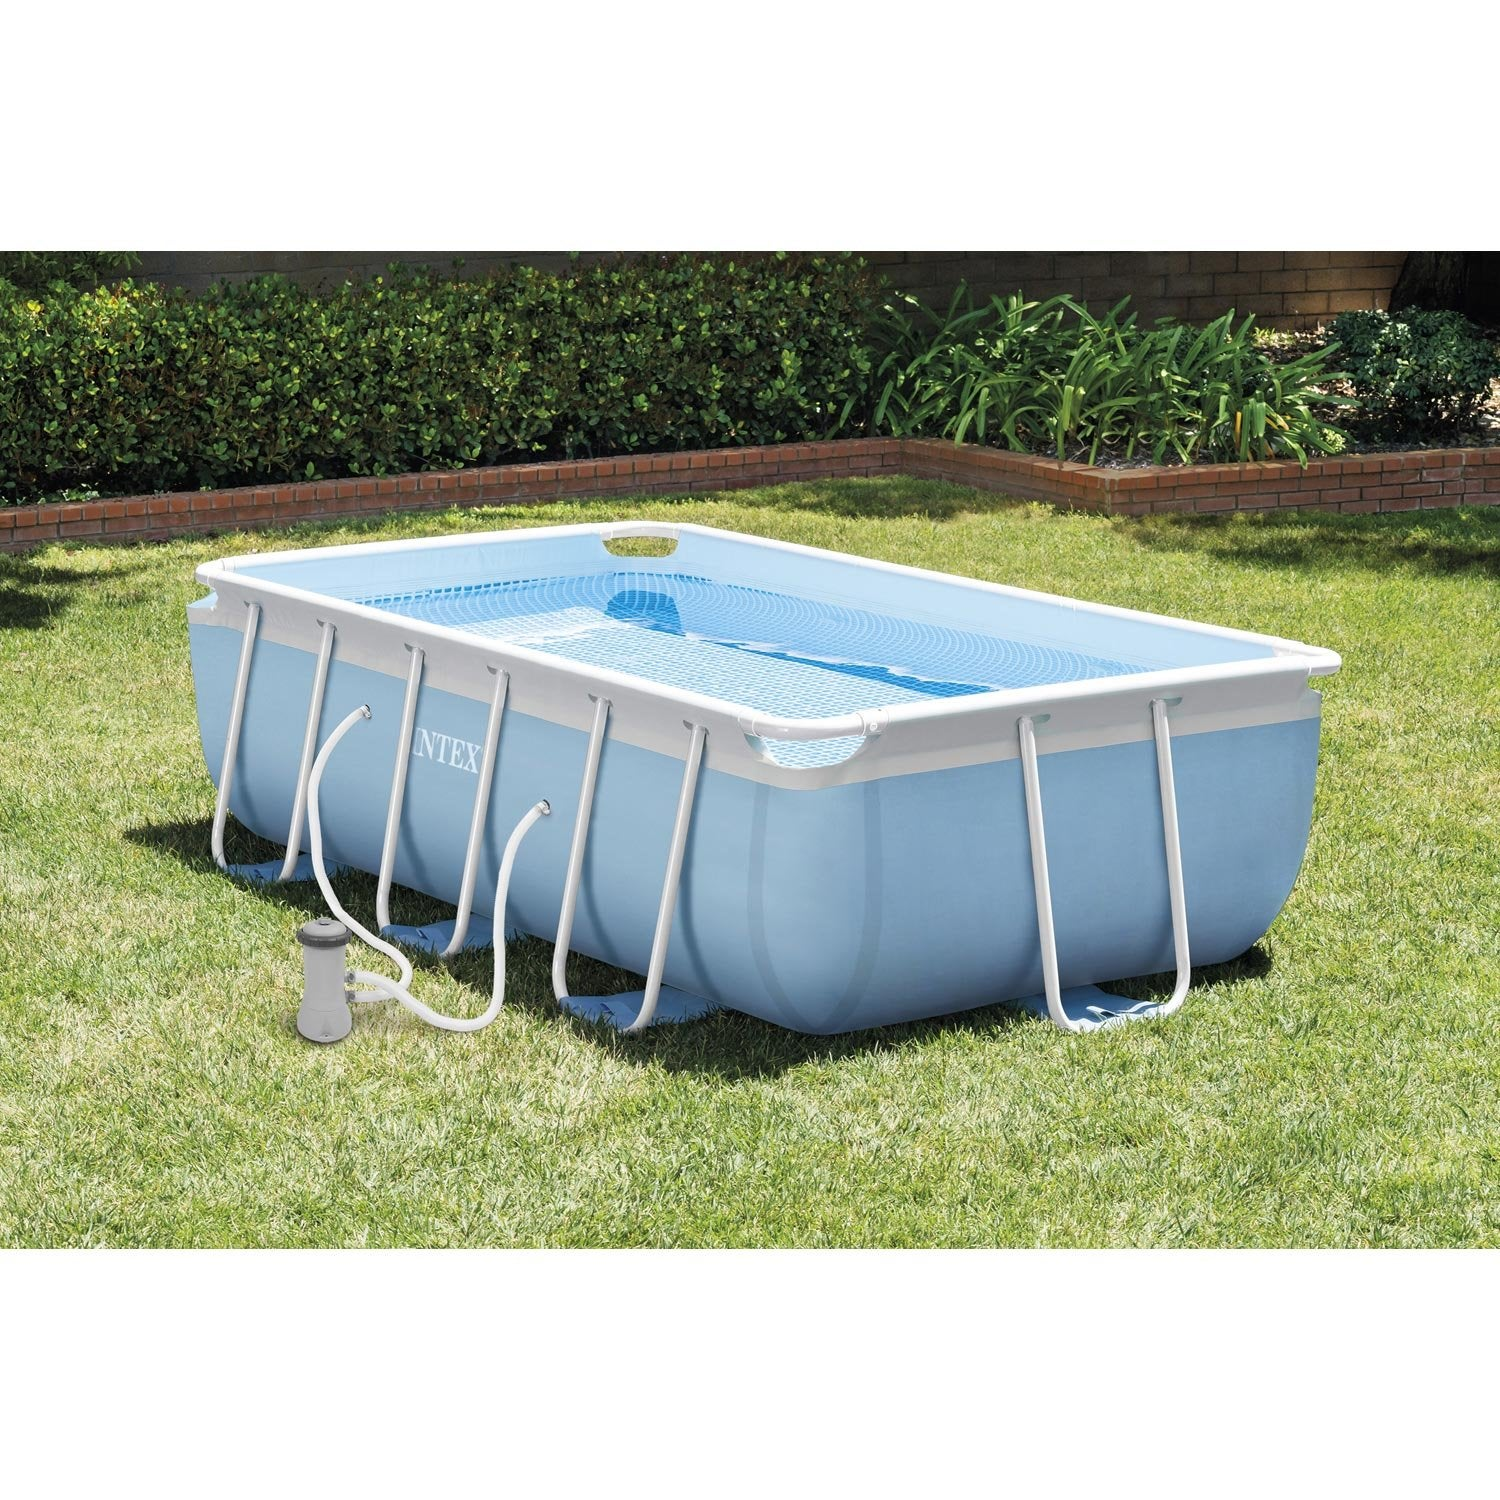 Piscine hors sol autoportante tubulaire intex l 3 4 x l 2 for Grande piscine tubulaire pas cher